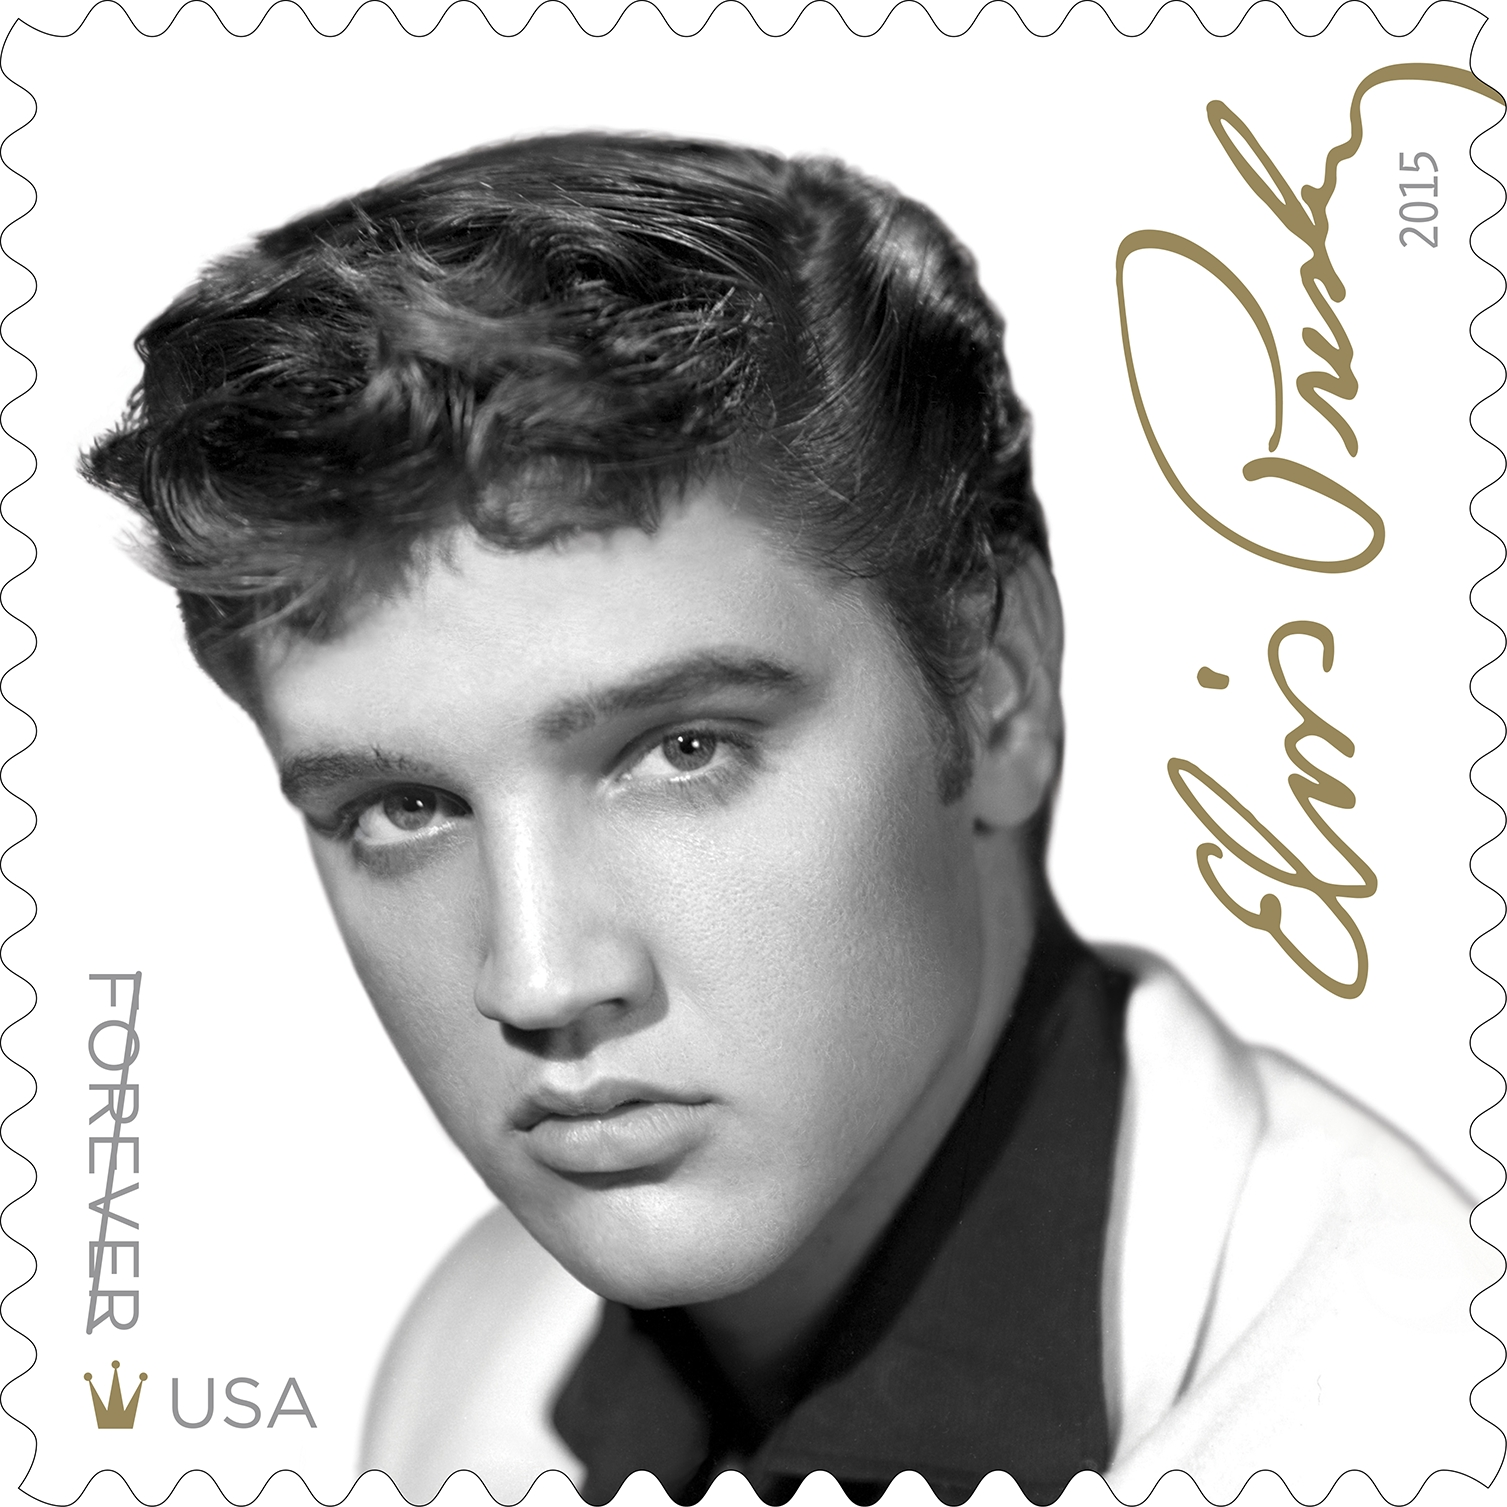 USPS to offer Elvis Presley greatest hits CD with stamp